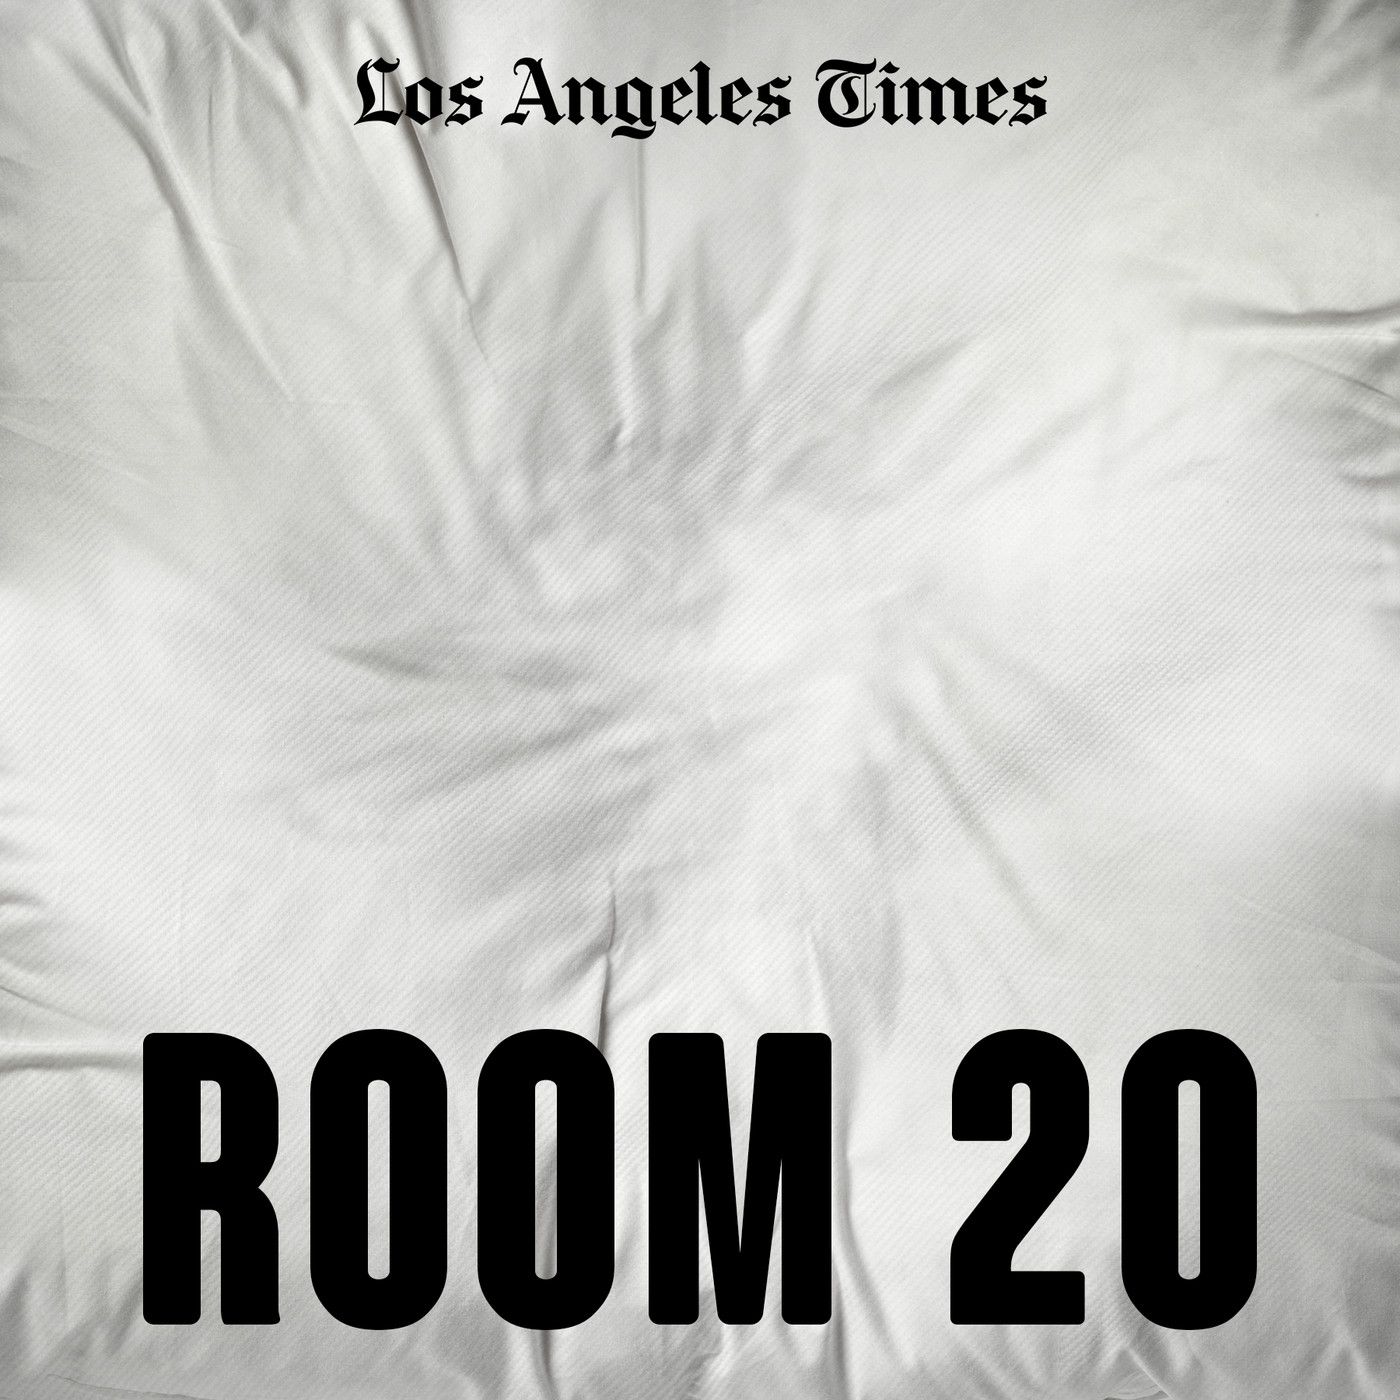 L.A. Times Presents: The Battle of 187